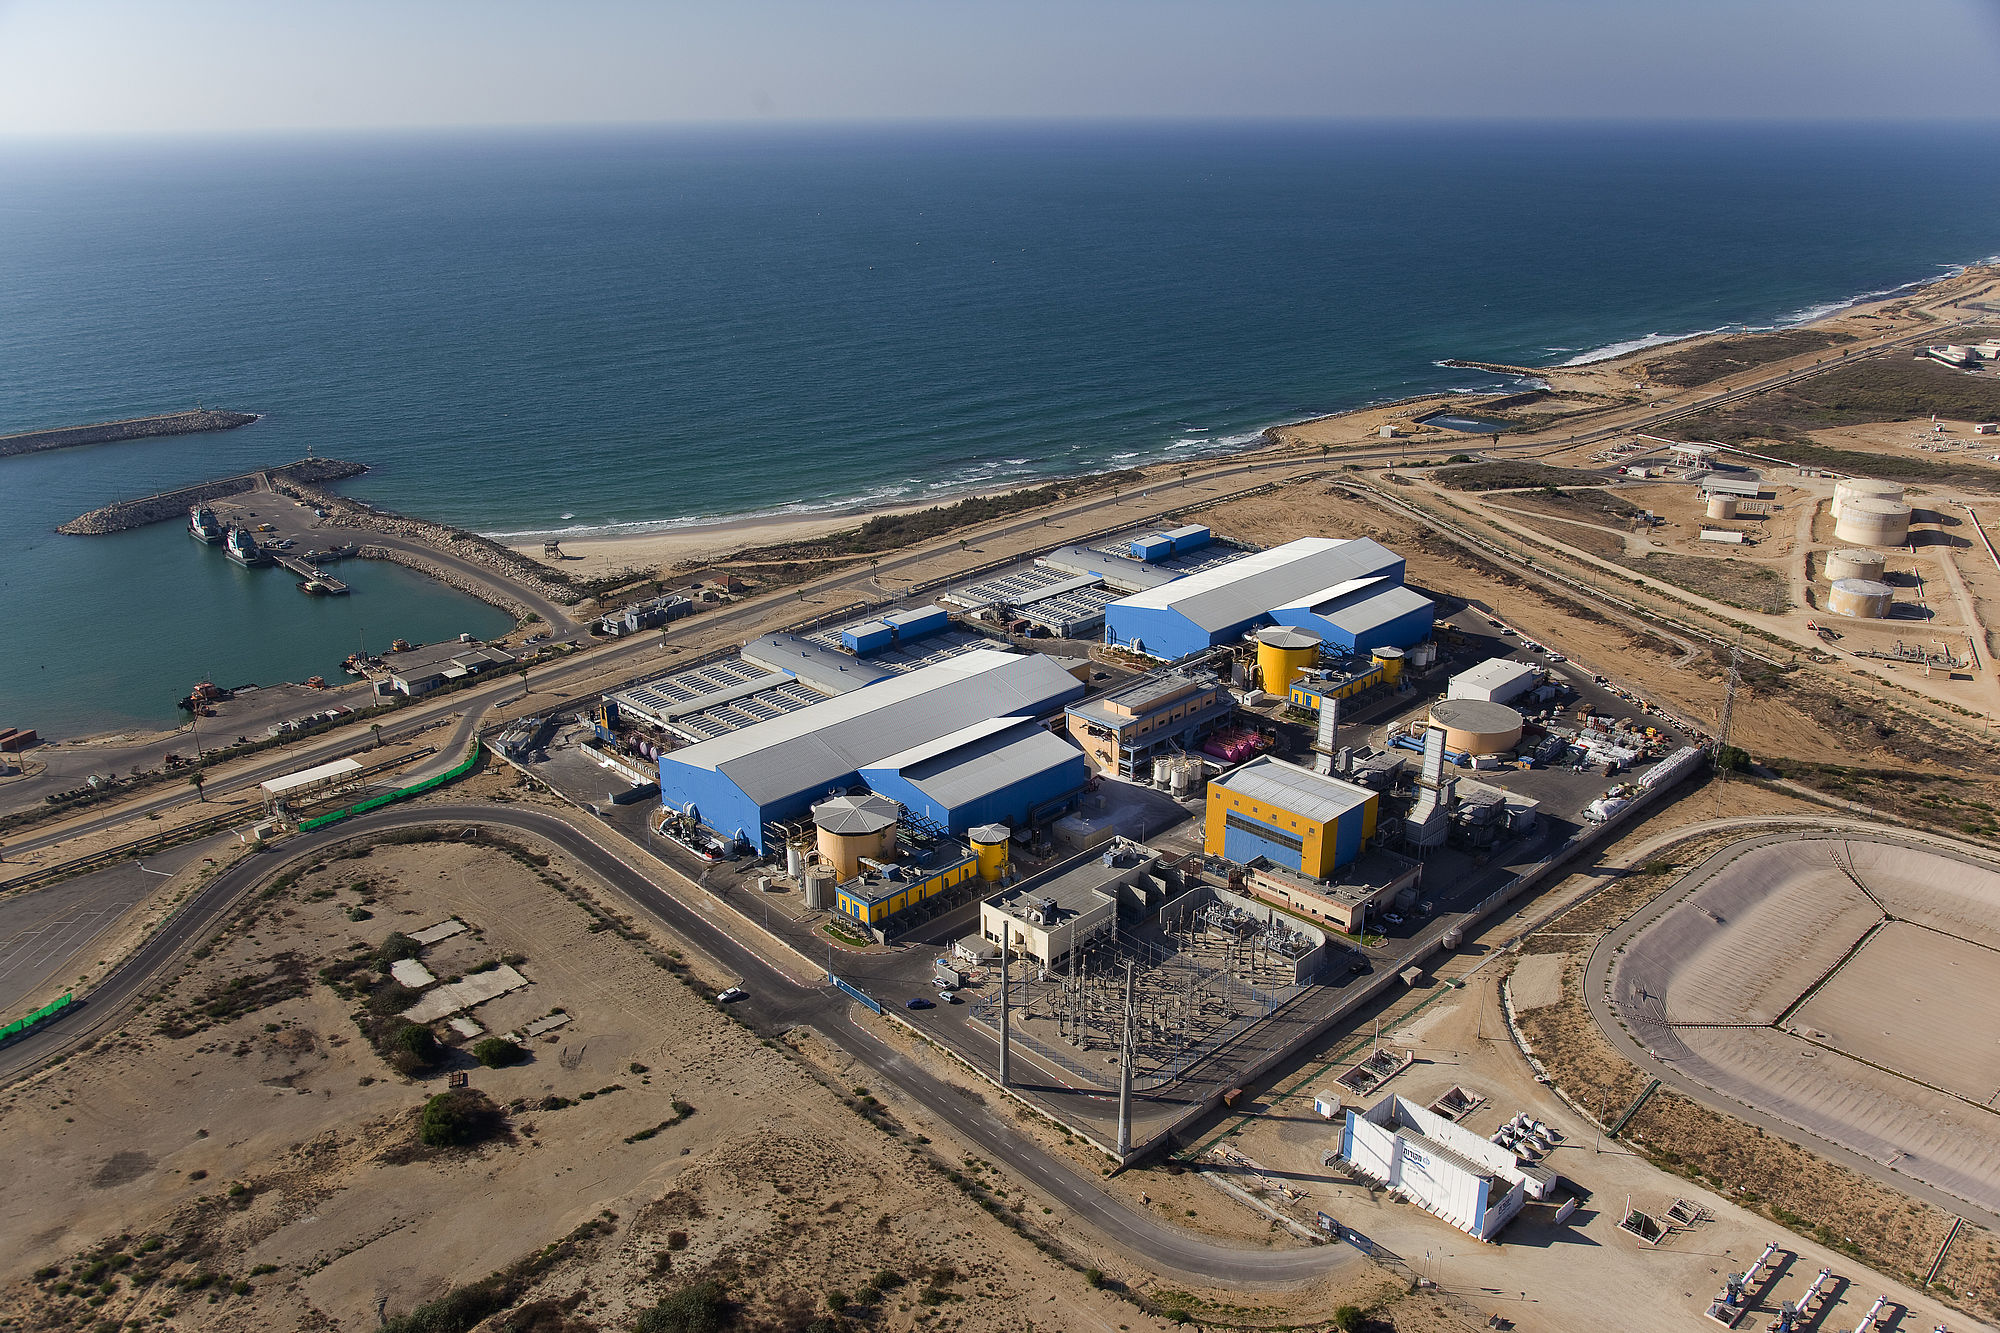 Water desalination an option to end droughts